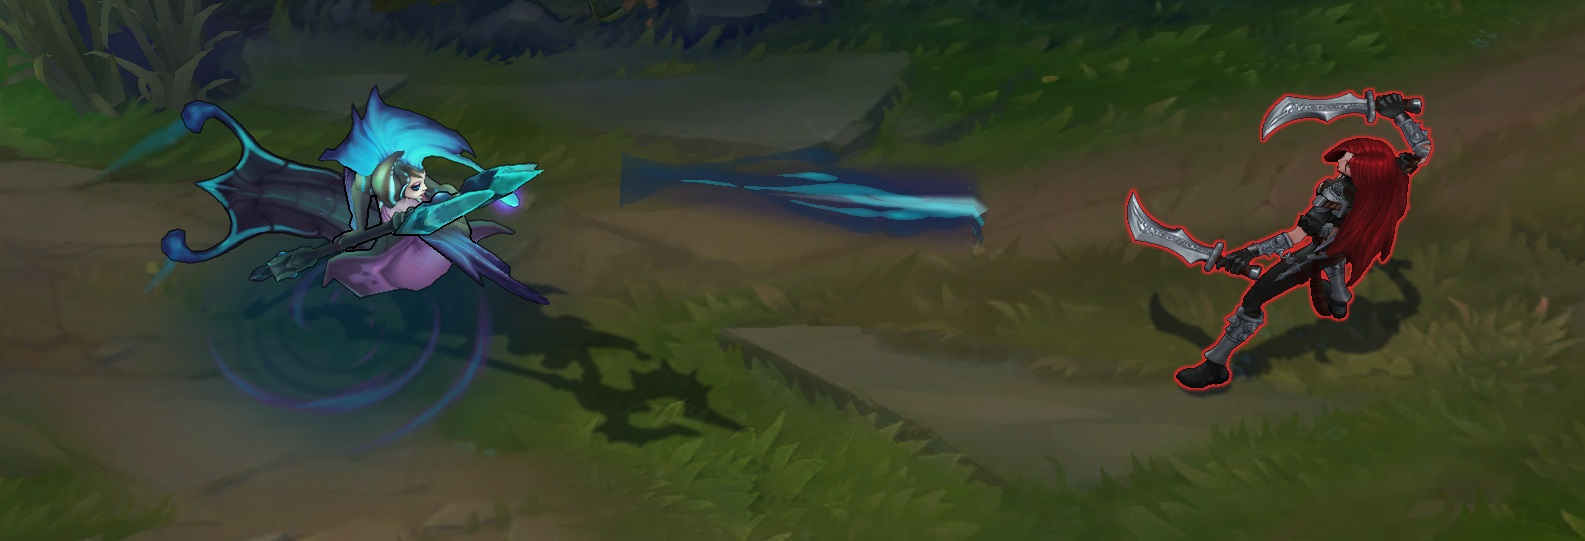 160616 08;08;36 Surrender at 20_ 6_14 PBE Update_ Soulstealer 021